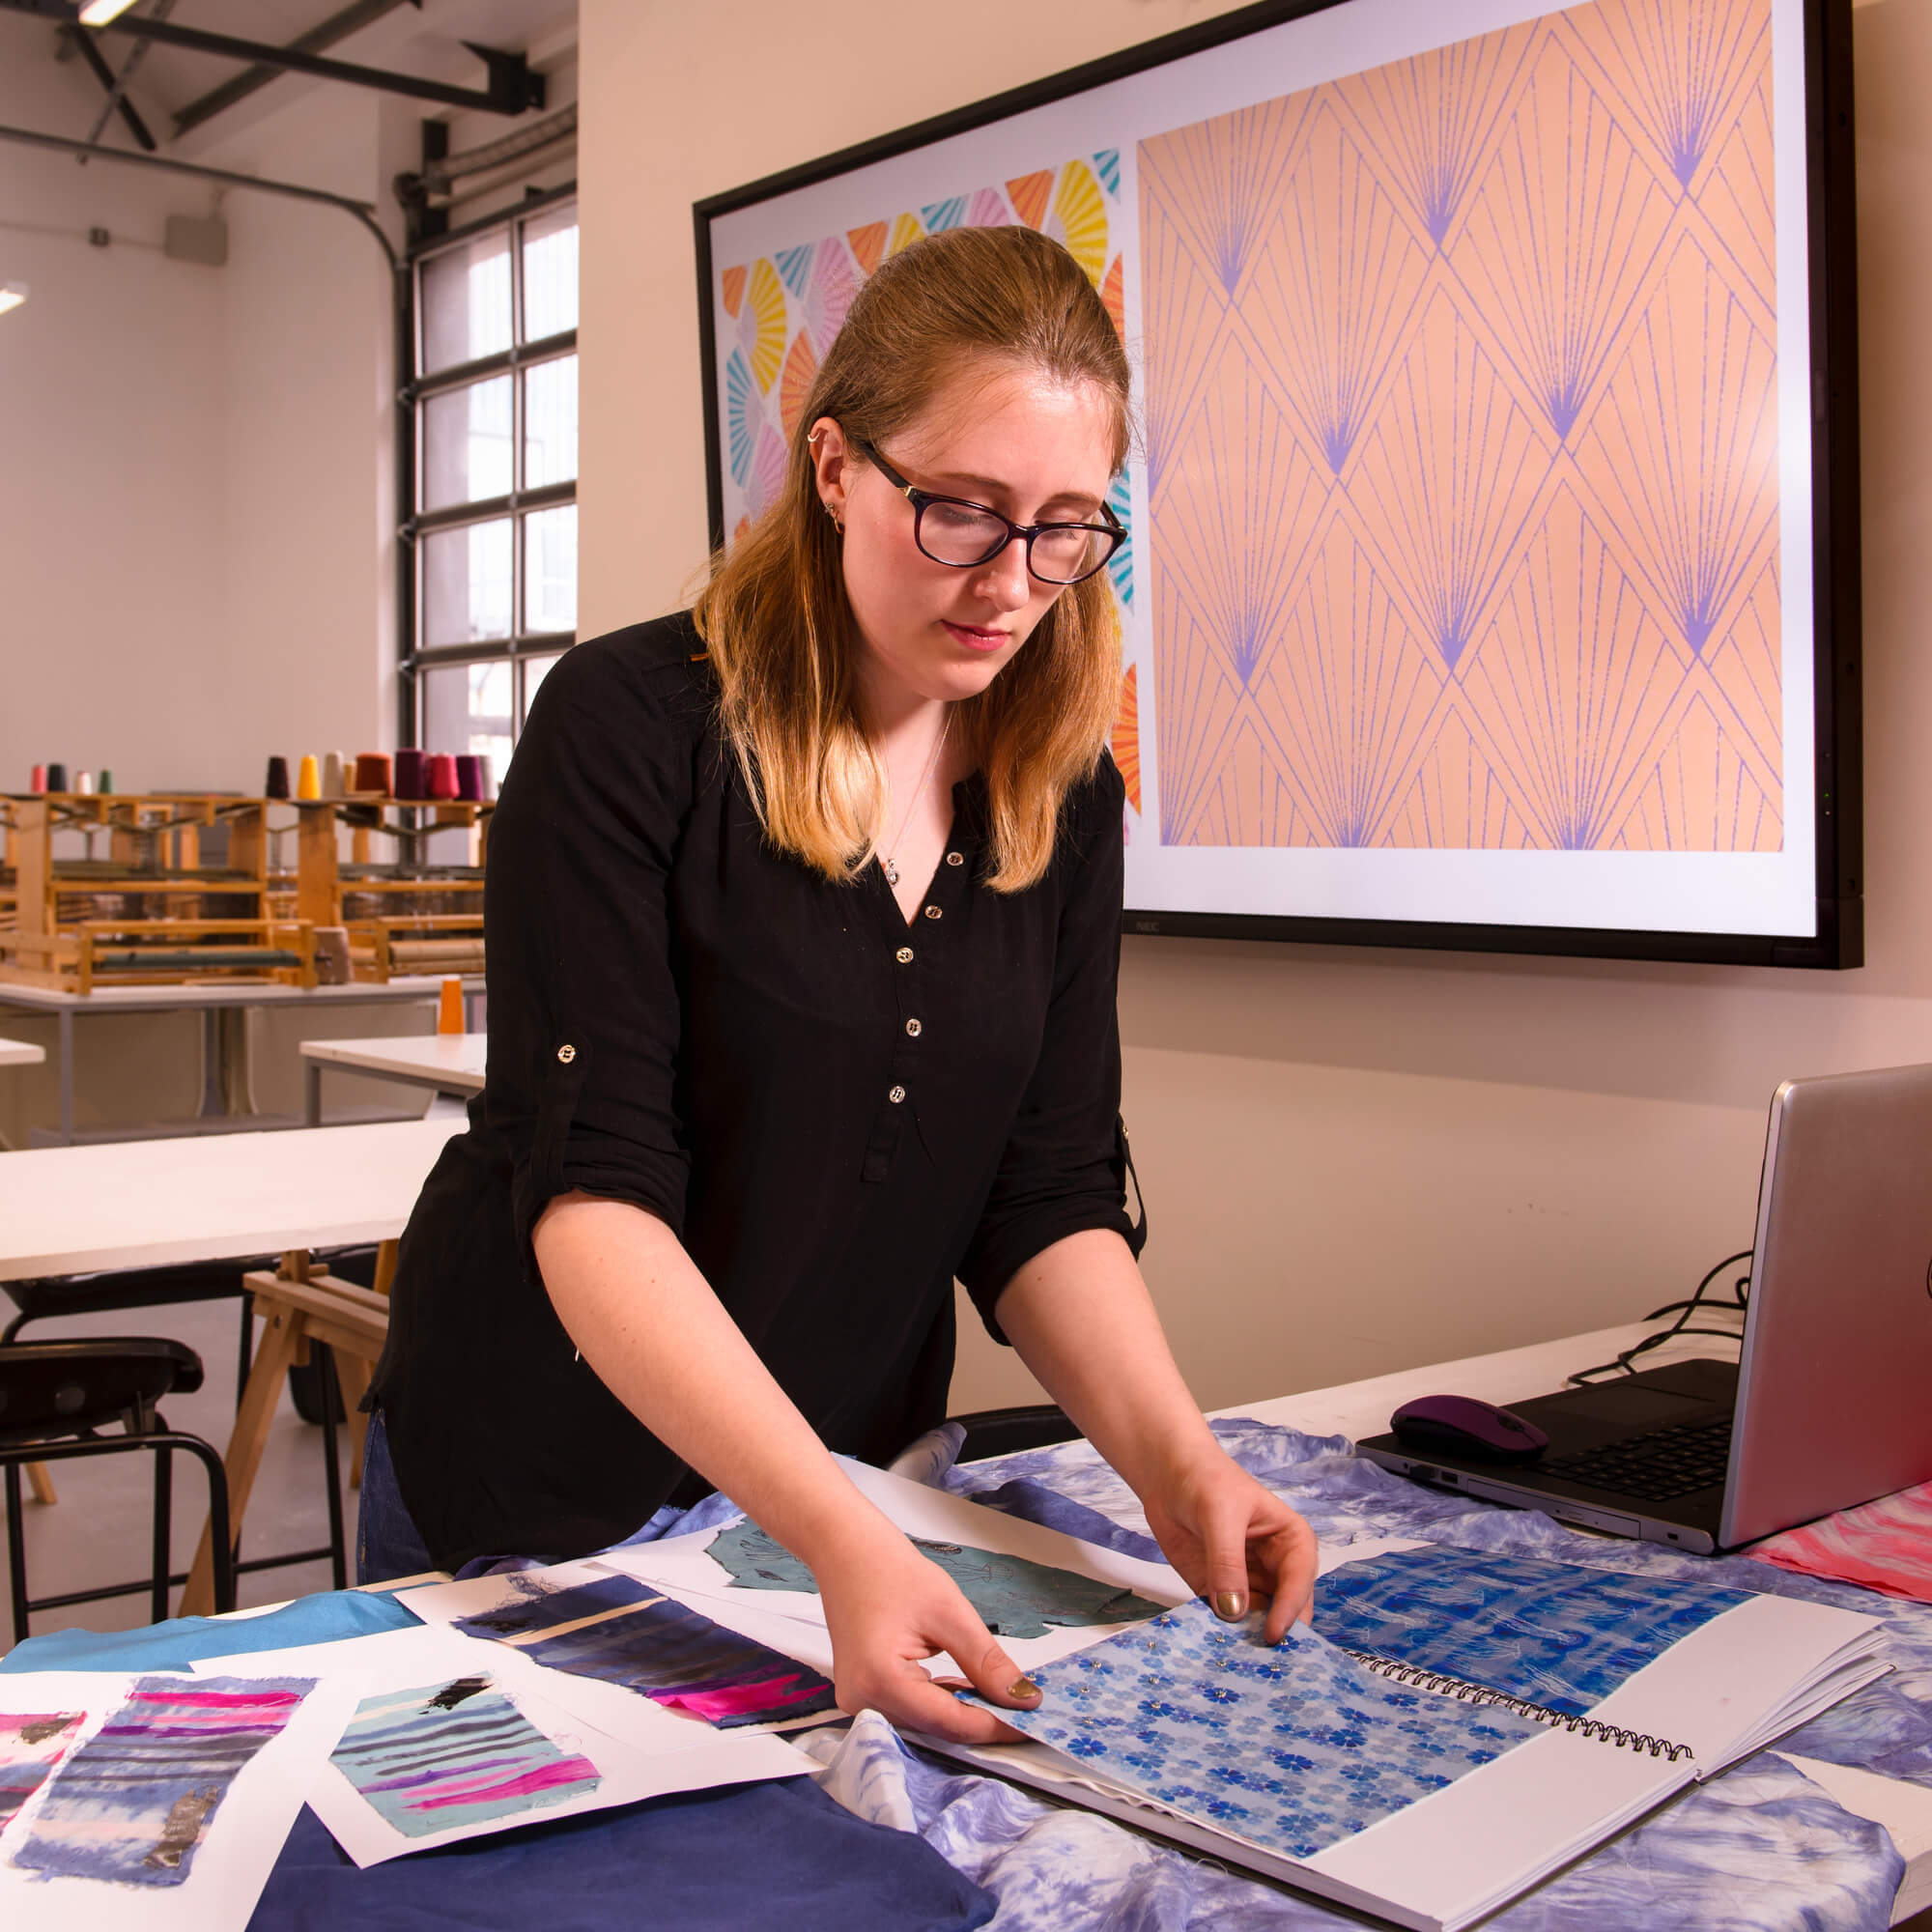 MA Fashion and Textiles student arranging textiles work